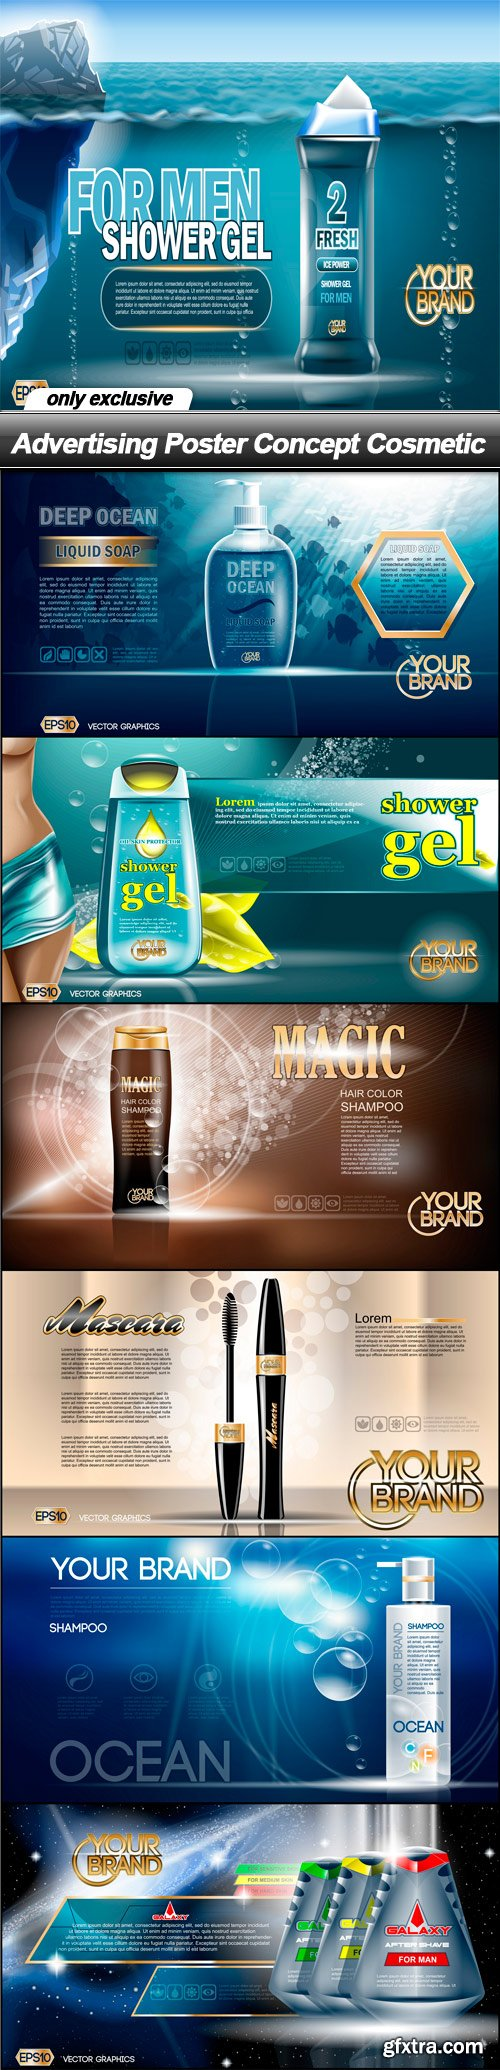 Advertising Poster Concept Cosmetic - 7 EPS